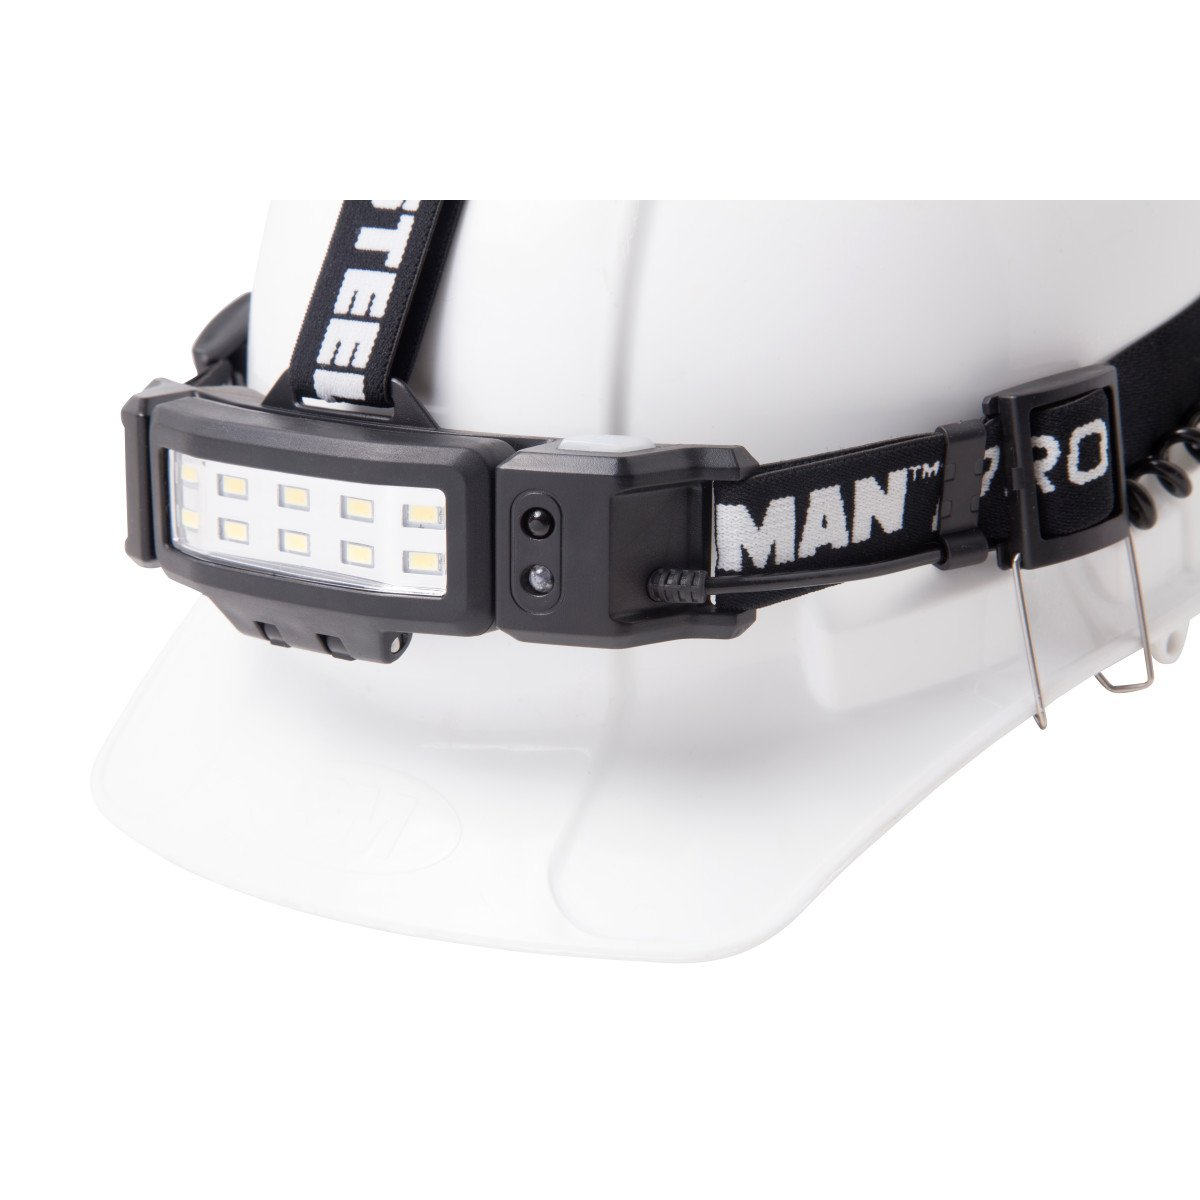 STEELMAN PRO 79052 Slim Profile LED Headlamp with Rear Flasher and 3 AA Batteries by Steelman Pro (Image #4)